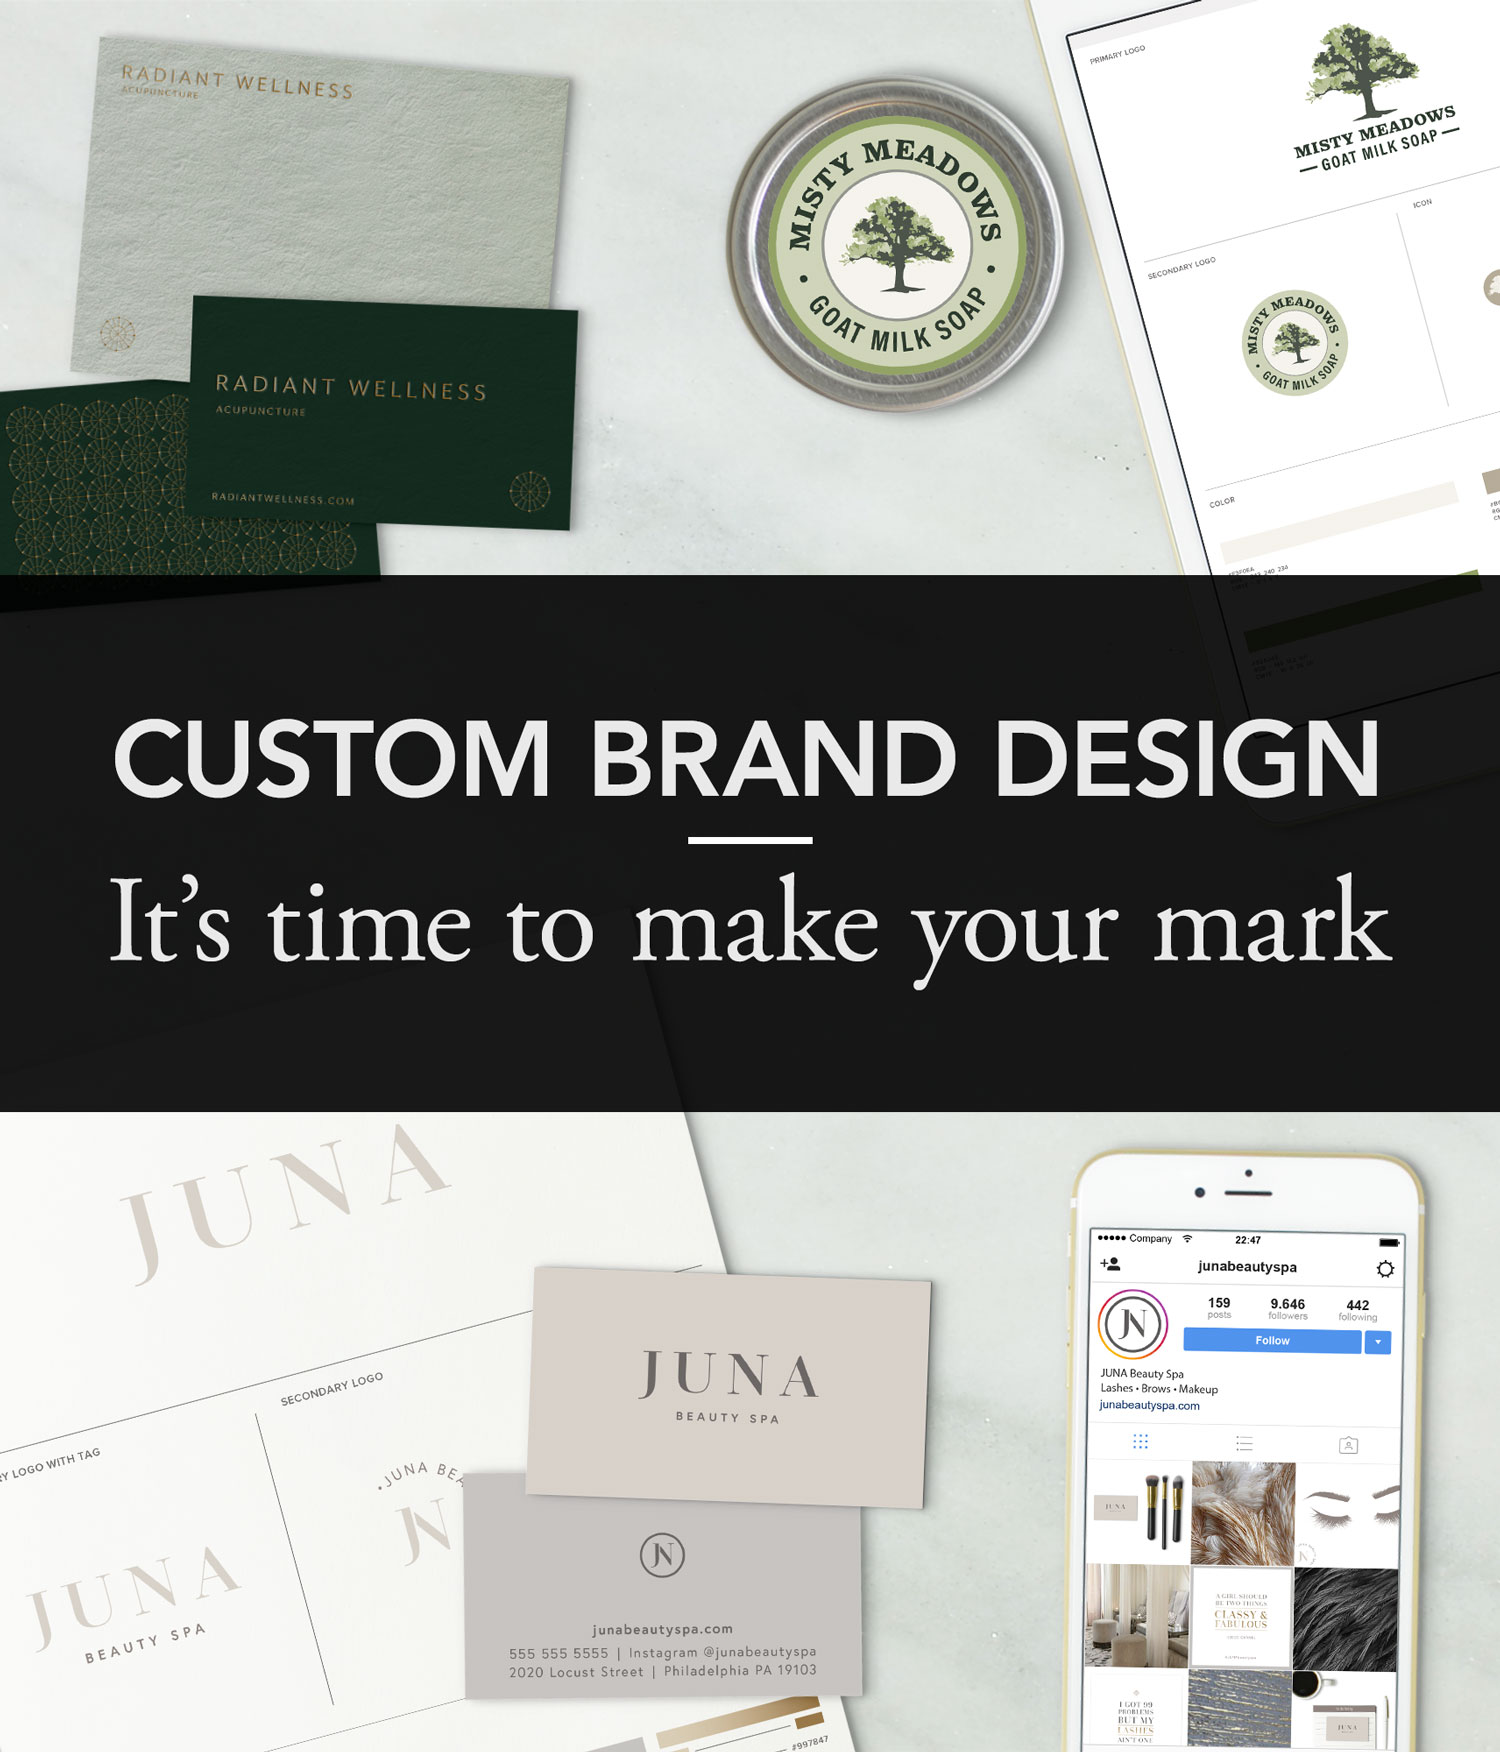 Ready to launch your new business but hung up on your image? Book a Design package with a professional brand designer - Susan Krajan Levitt is a branding and web designer with a flair for minimalism and purpose. Working one-on-one with each of her clients, she delivers custom crafted logos and brand identities that are guaranteed to elevate your business.Value: $1500Starting Bid: $350